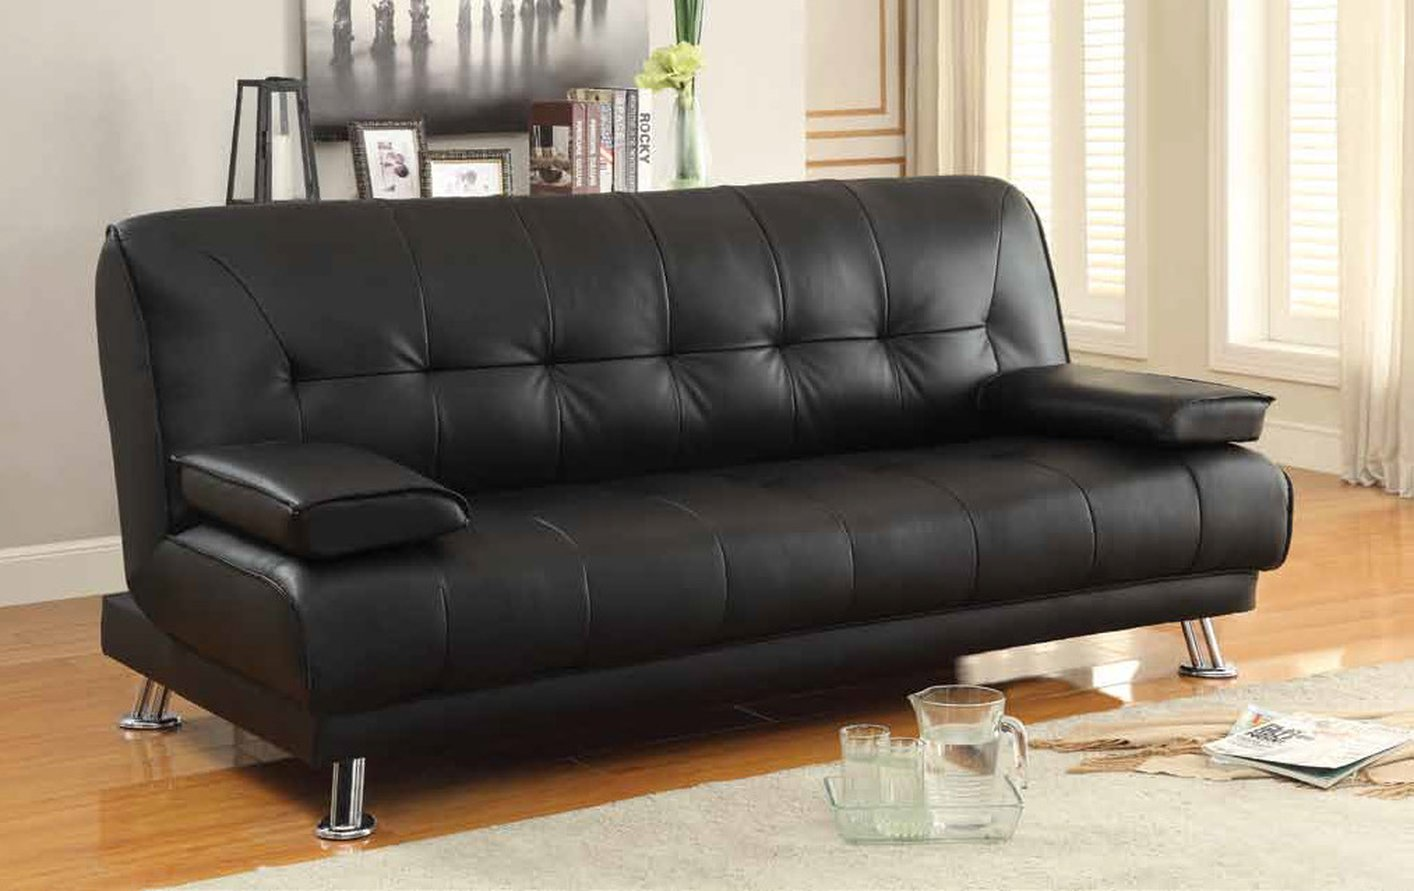 coaster 300205 black leather sofa bed steal a sofa furniture outlet